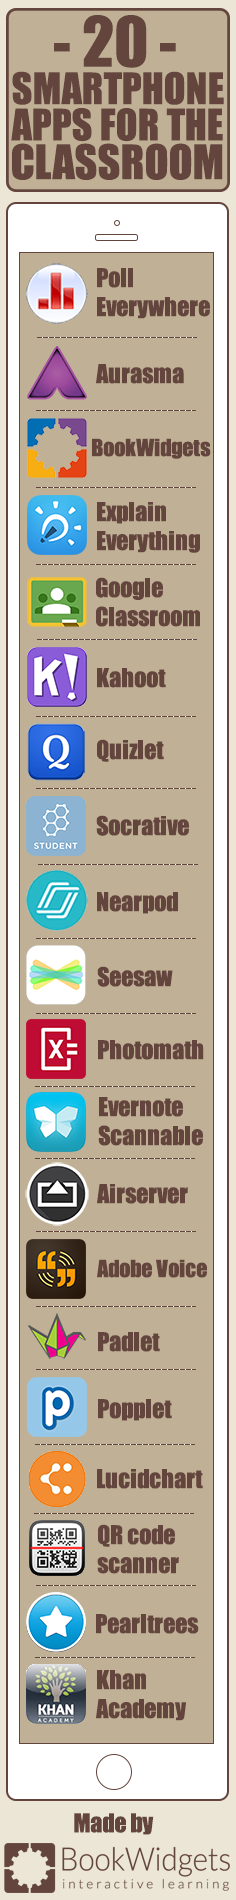 Smartphone apps for in the classroom